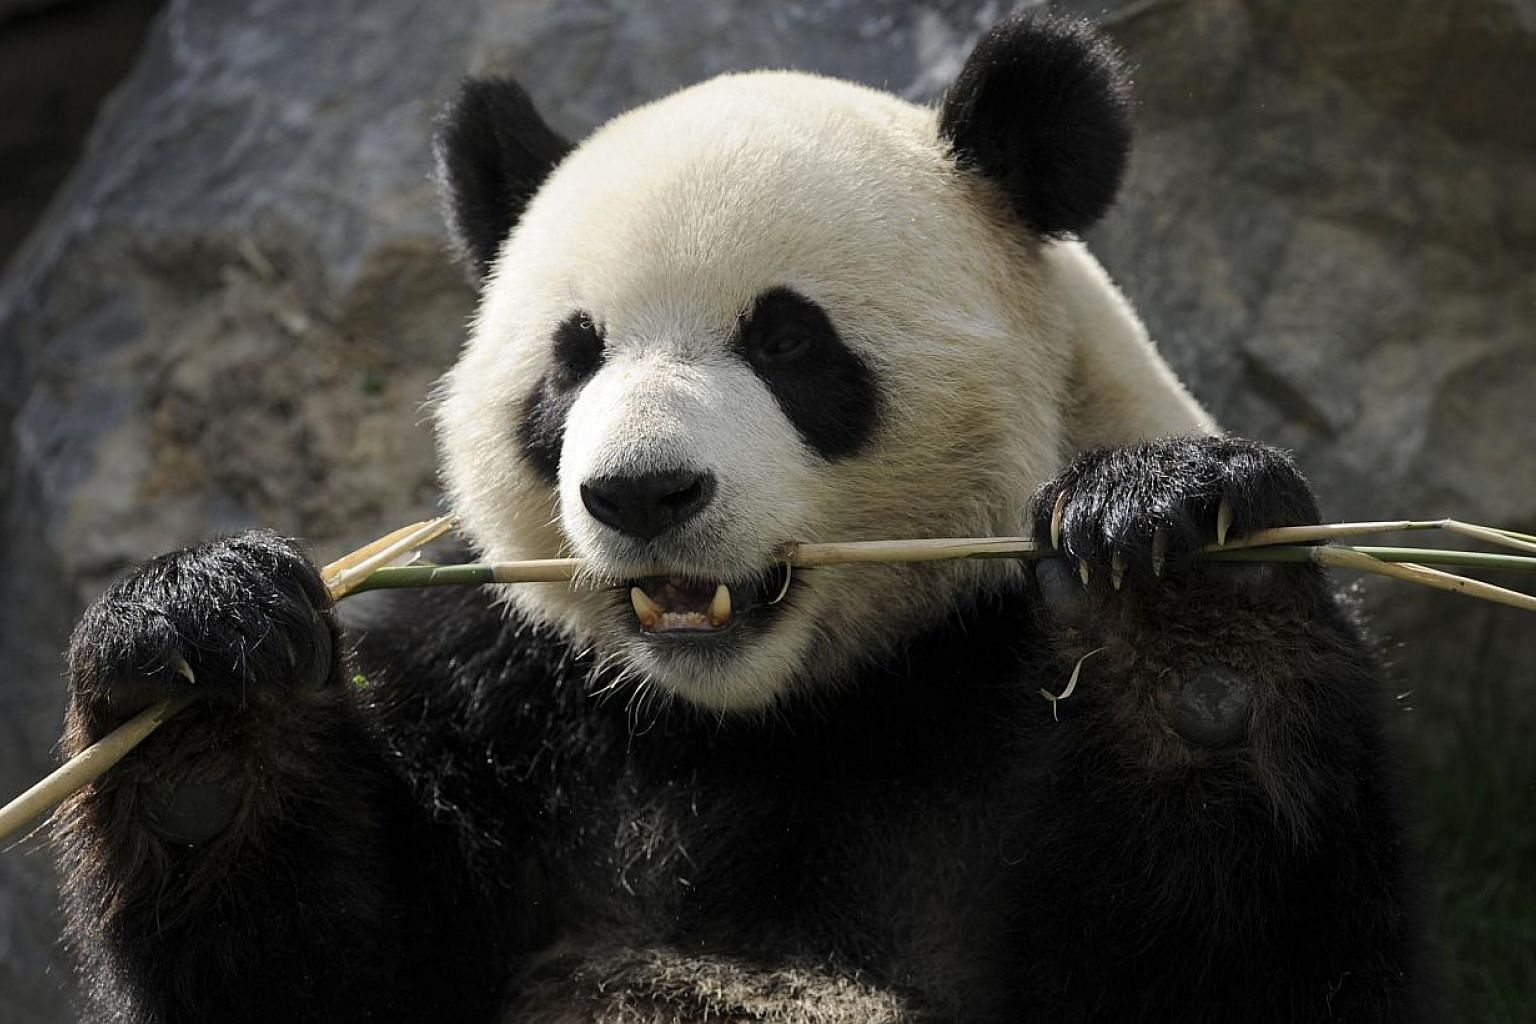 """A giant panda munching bamboo leaves at an animal park in Belgium.Despite two million years of munching almost exclusively on bamboo, the giant panda's gut has not adapted to eating the plant - putting the creatures in an """"evolutionary dilemma"""""""